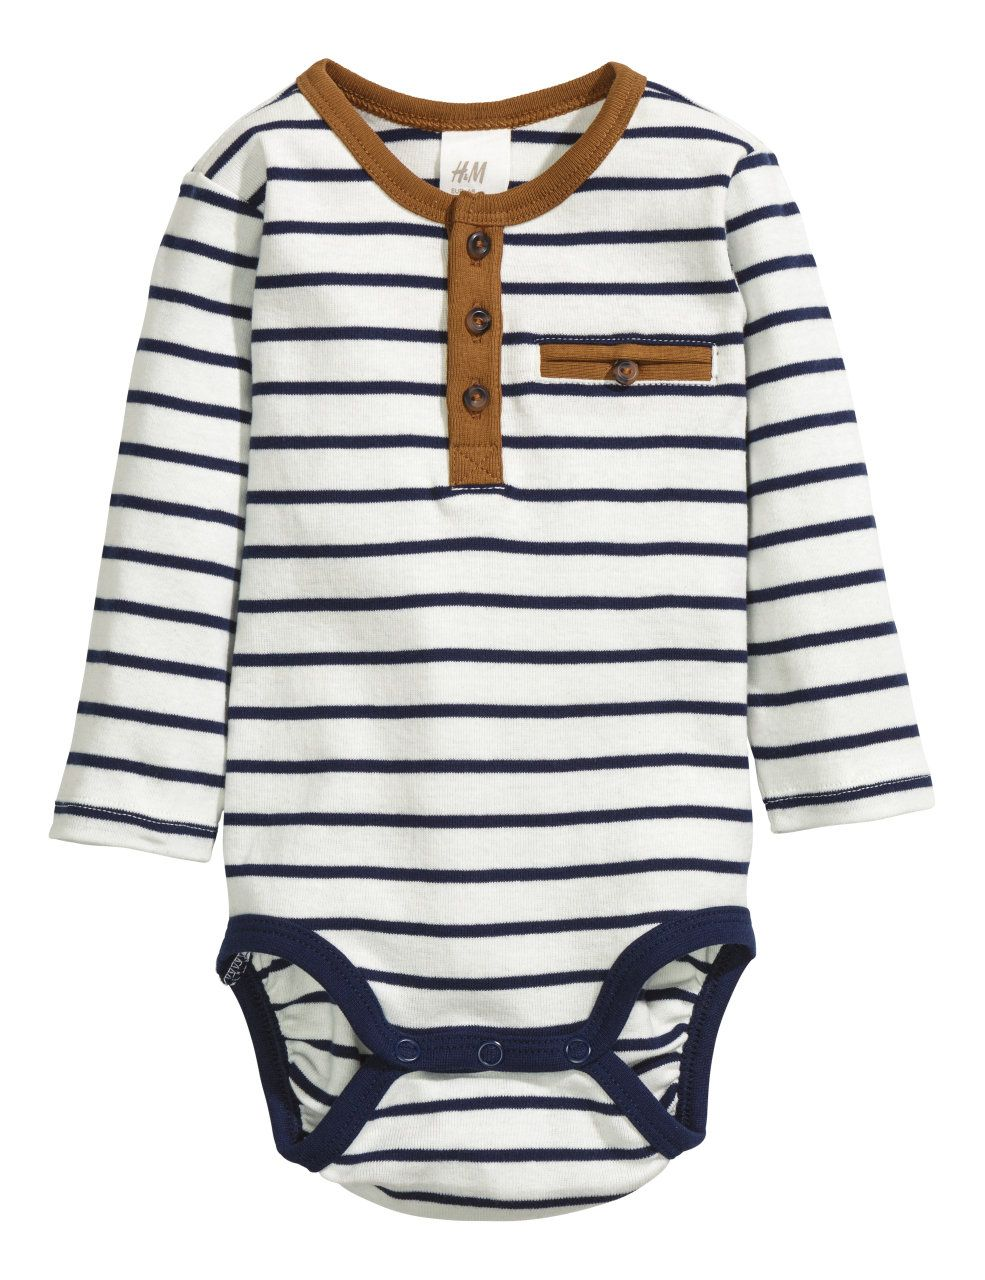 1e99828e1 H&M navy and white striped baby romper | baby boy H&M clothing rompers